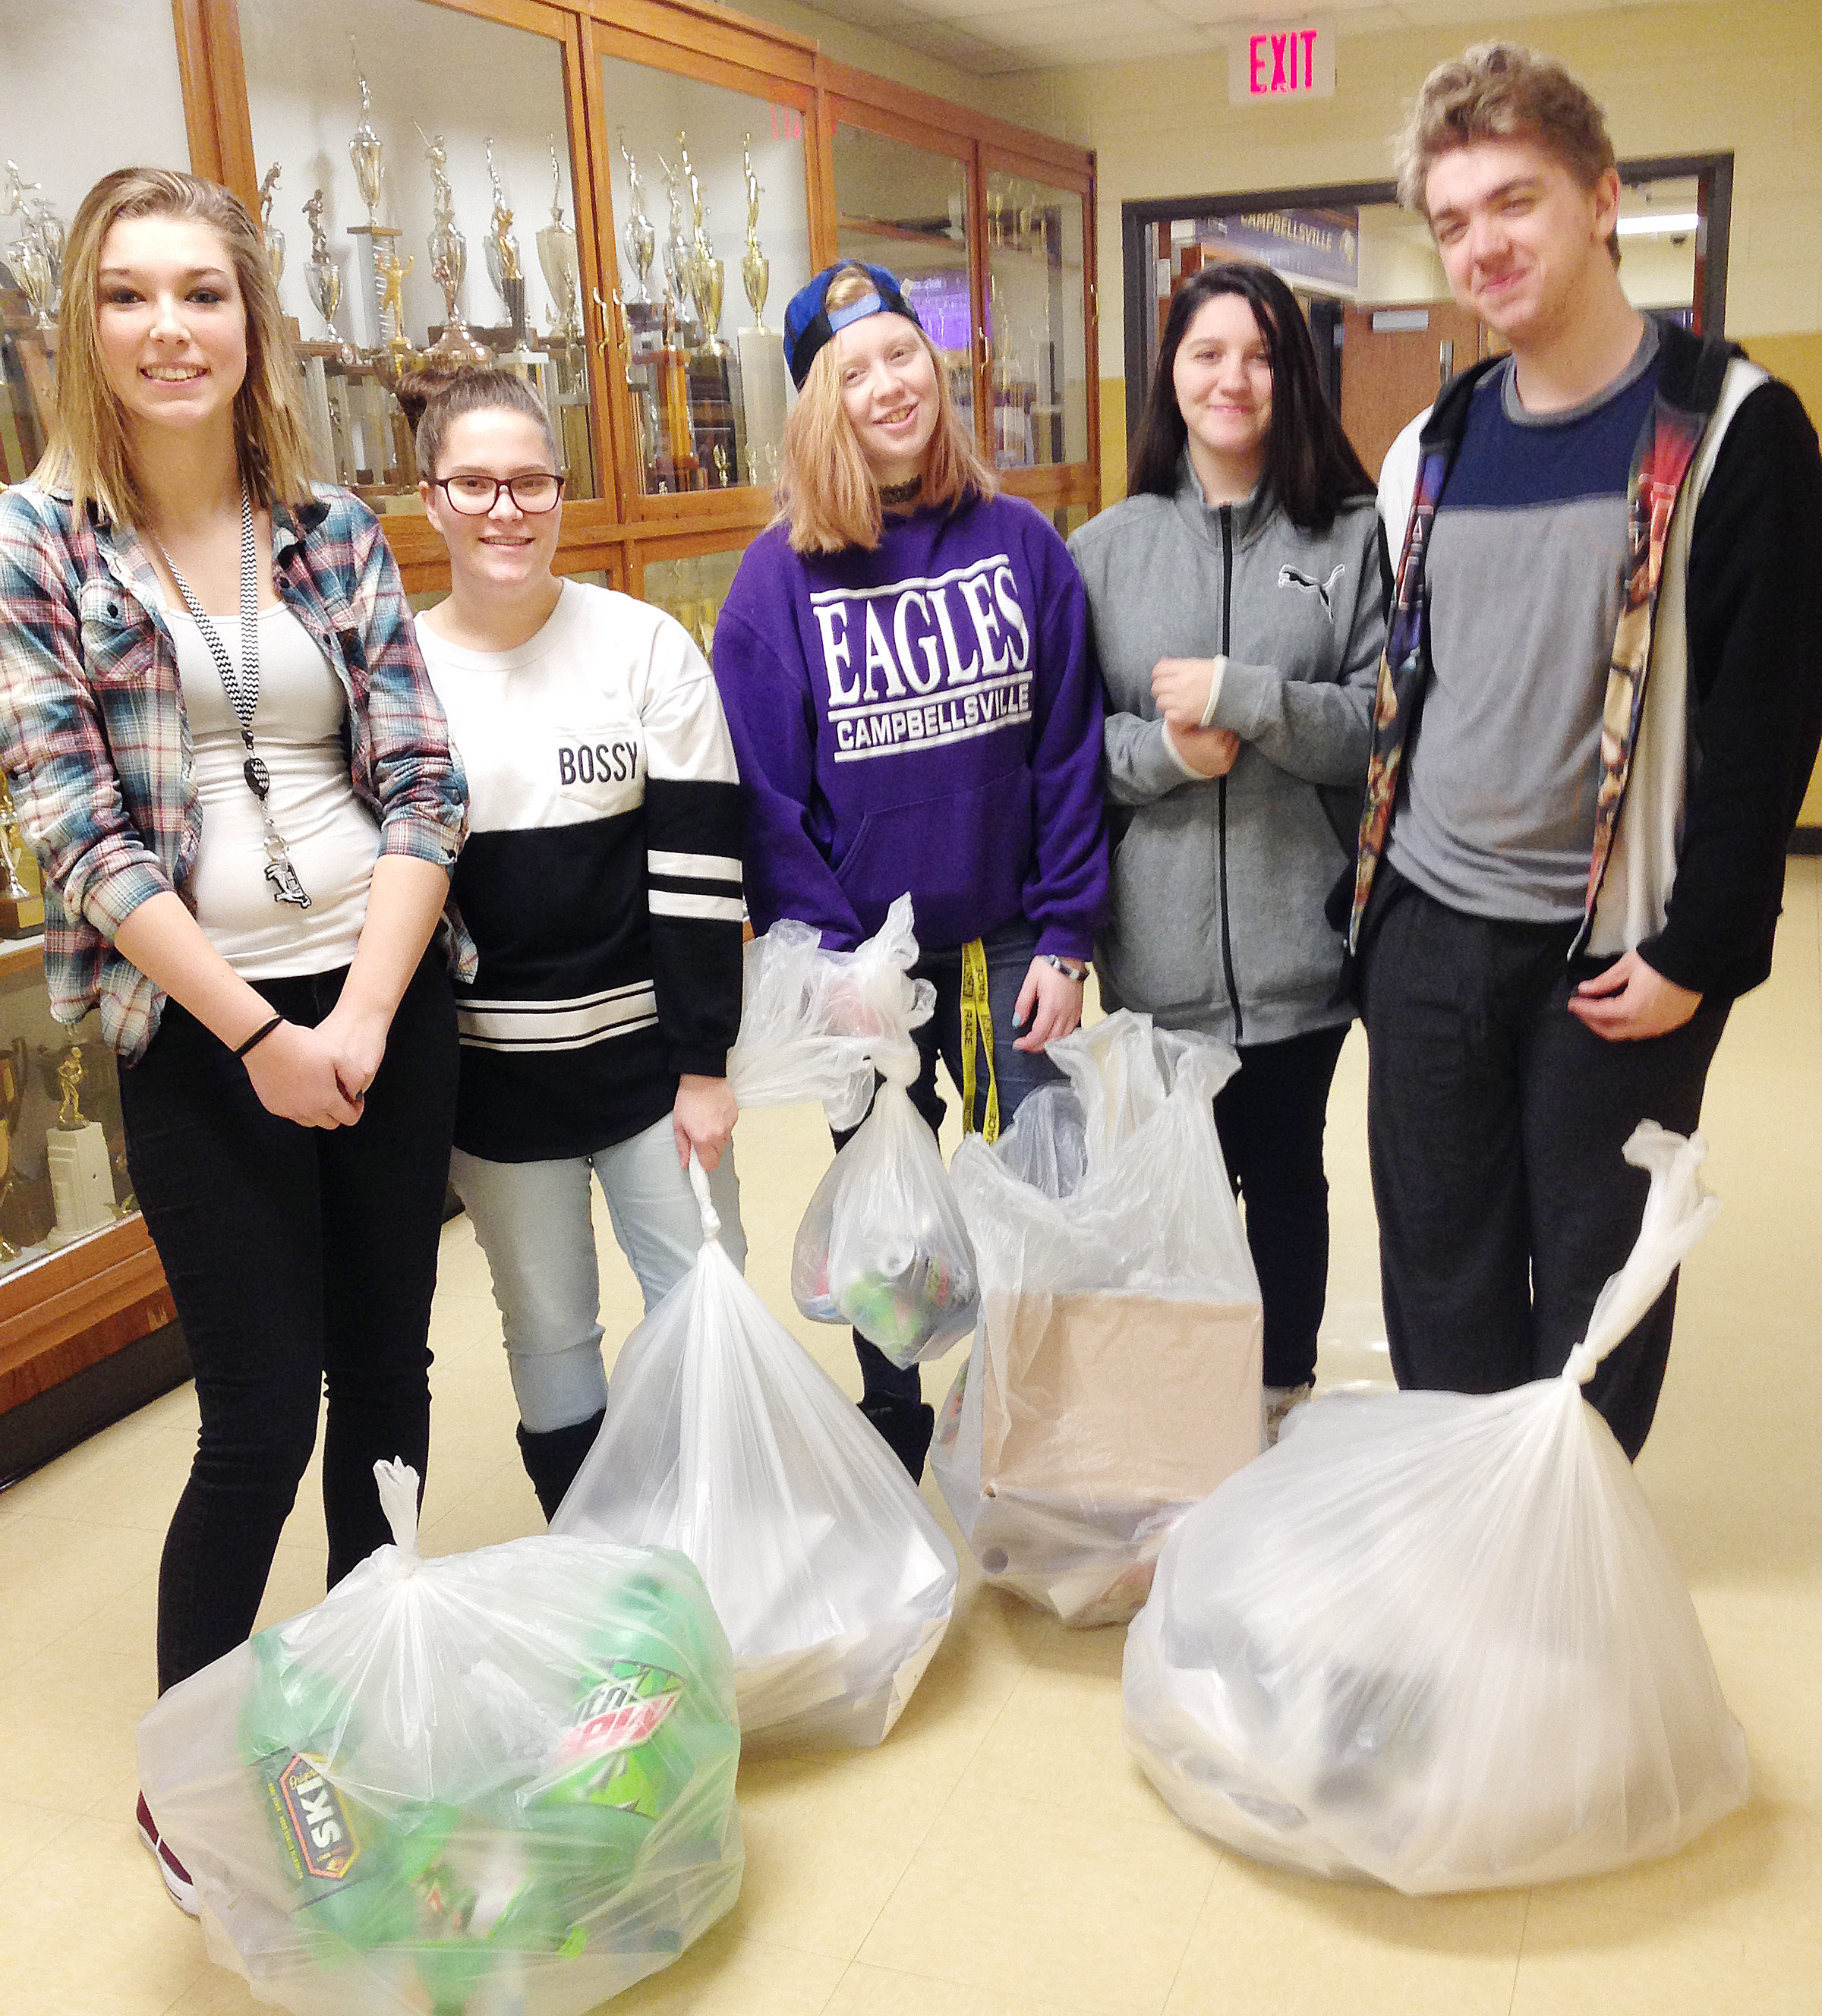 CHS family and consumer science students, from left, freshman Autumn Harvey, sophomore Nevaeh Underwood, senior Elizabeth Golden, freshman Paula Hoskins and sophomore Anthony Shipione collect recycling items at their school. The students, along with several other classmates, coordinate a recycling effort at the CHS campus.